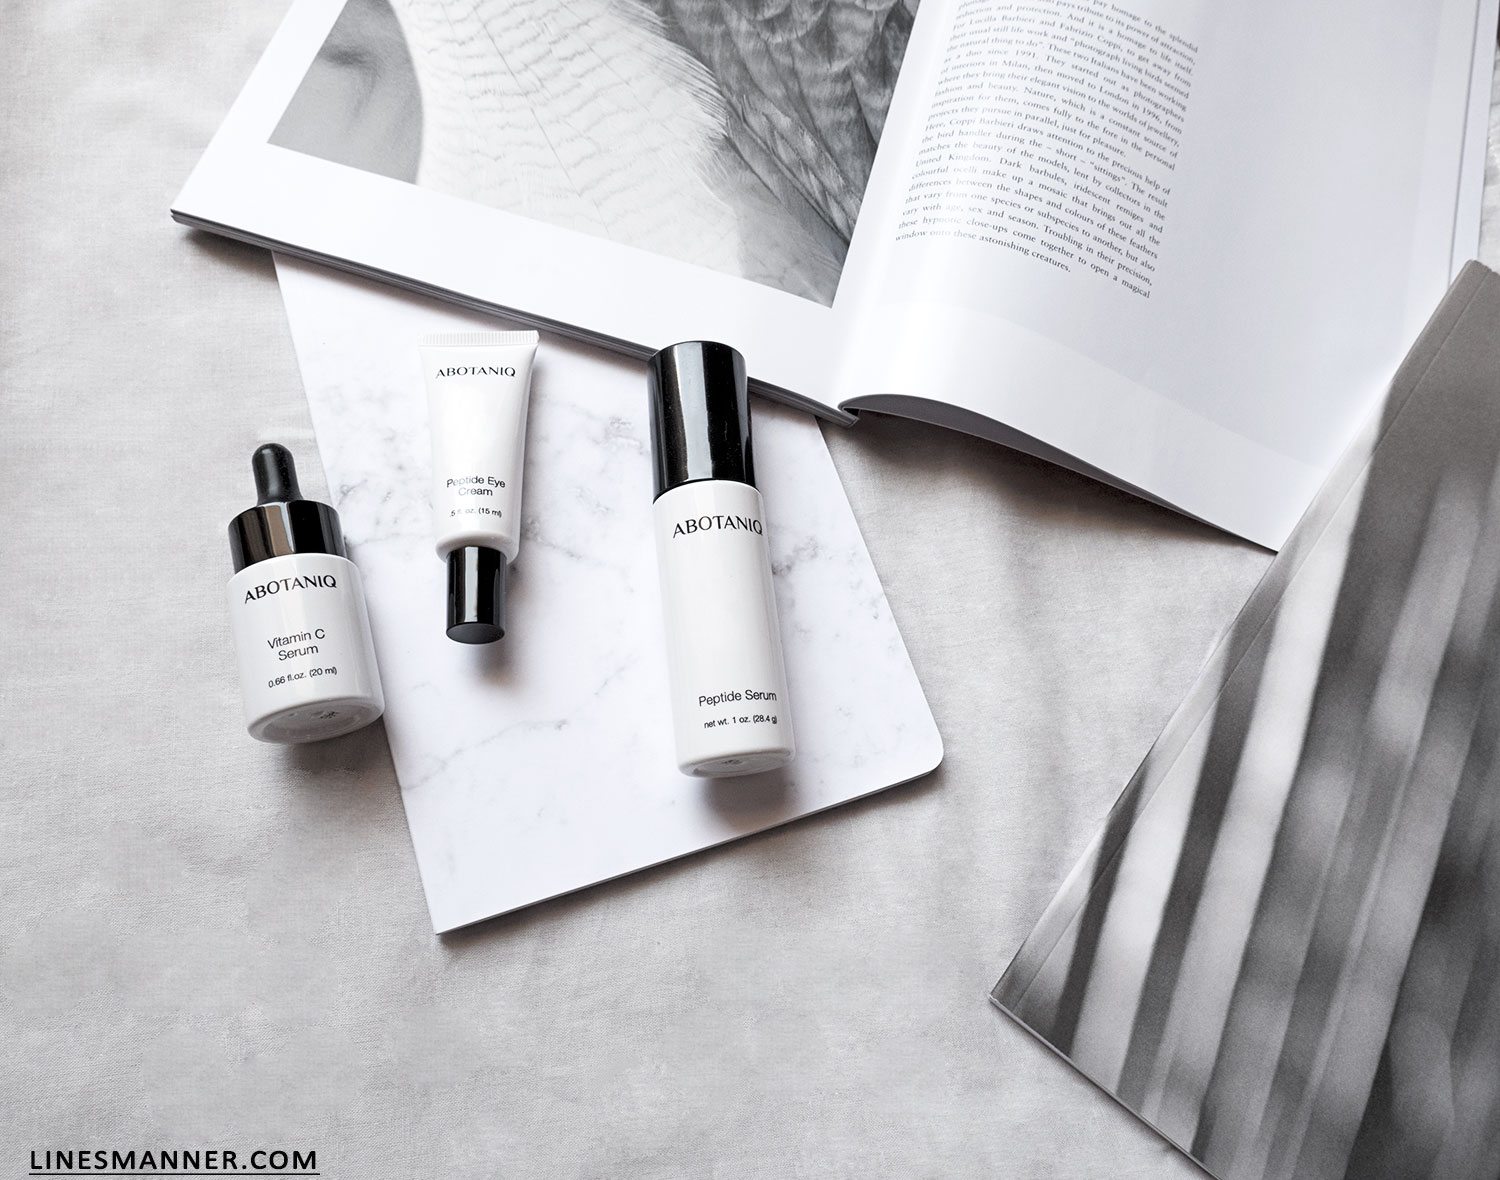 Lines-Manner-Abotaniq-Skin_Care-Natural-Science-Technology-Beauty-Quality-Authentic-Skins-Peptides-Antioxidant-Fresh-Black_and_White-Essentials-Expert-1